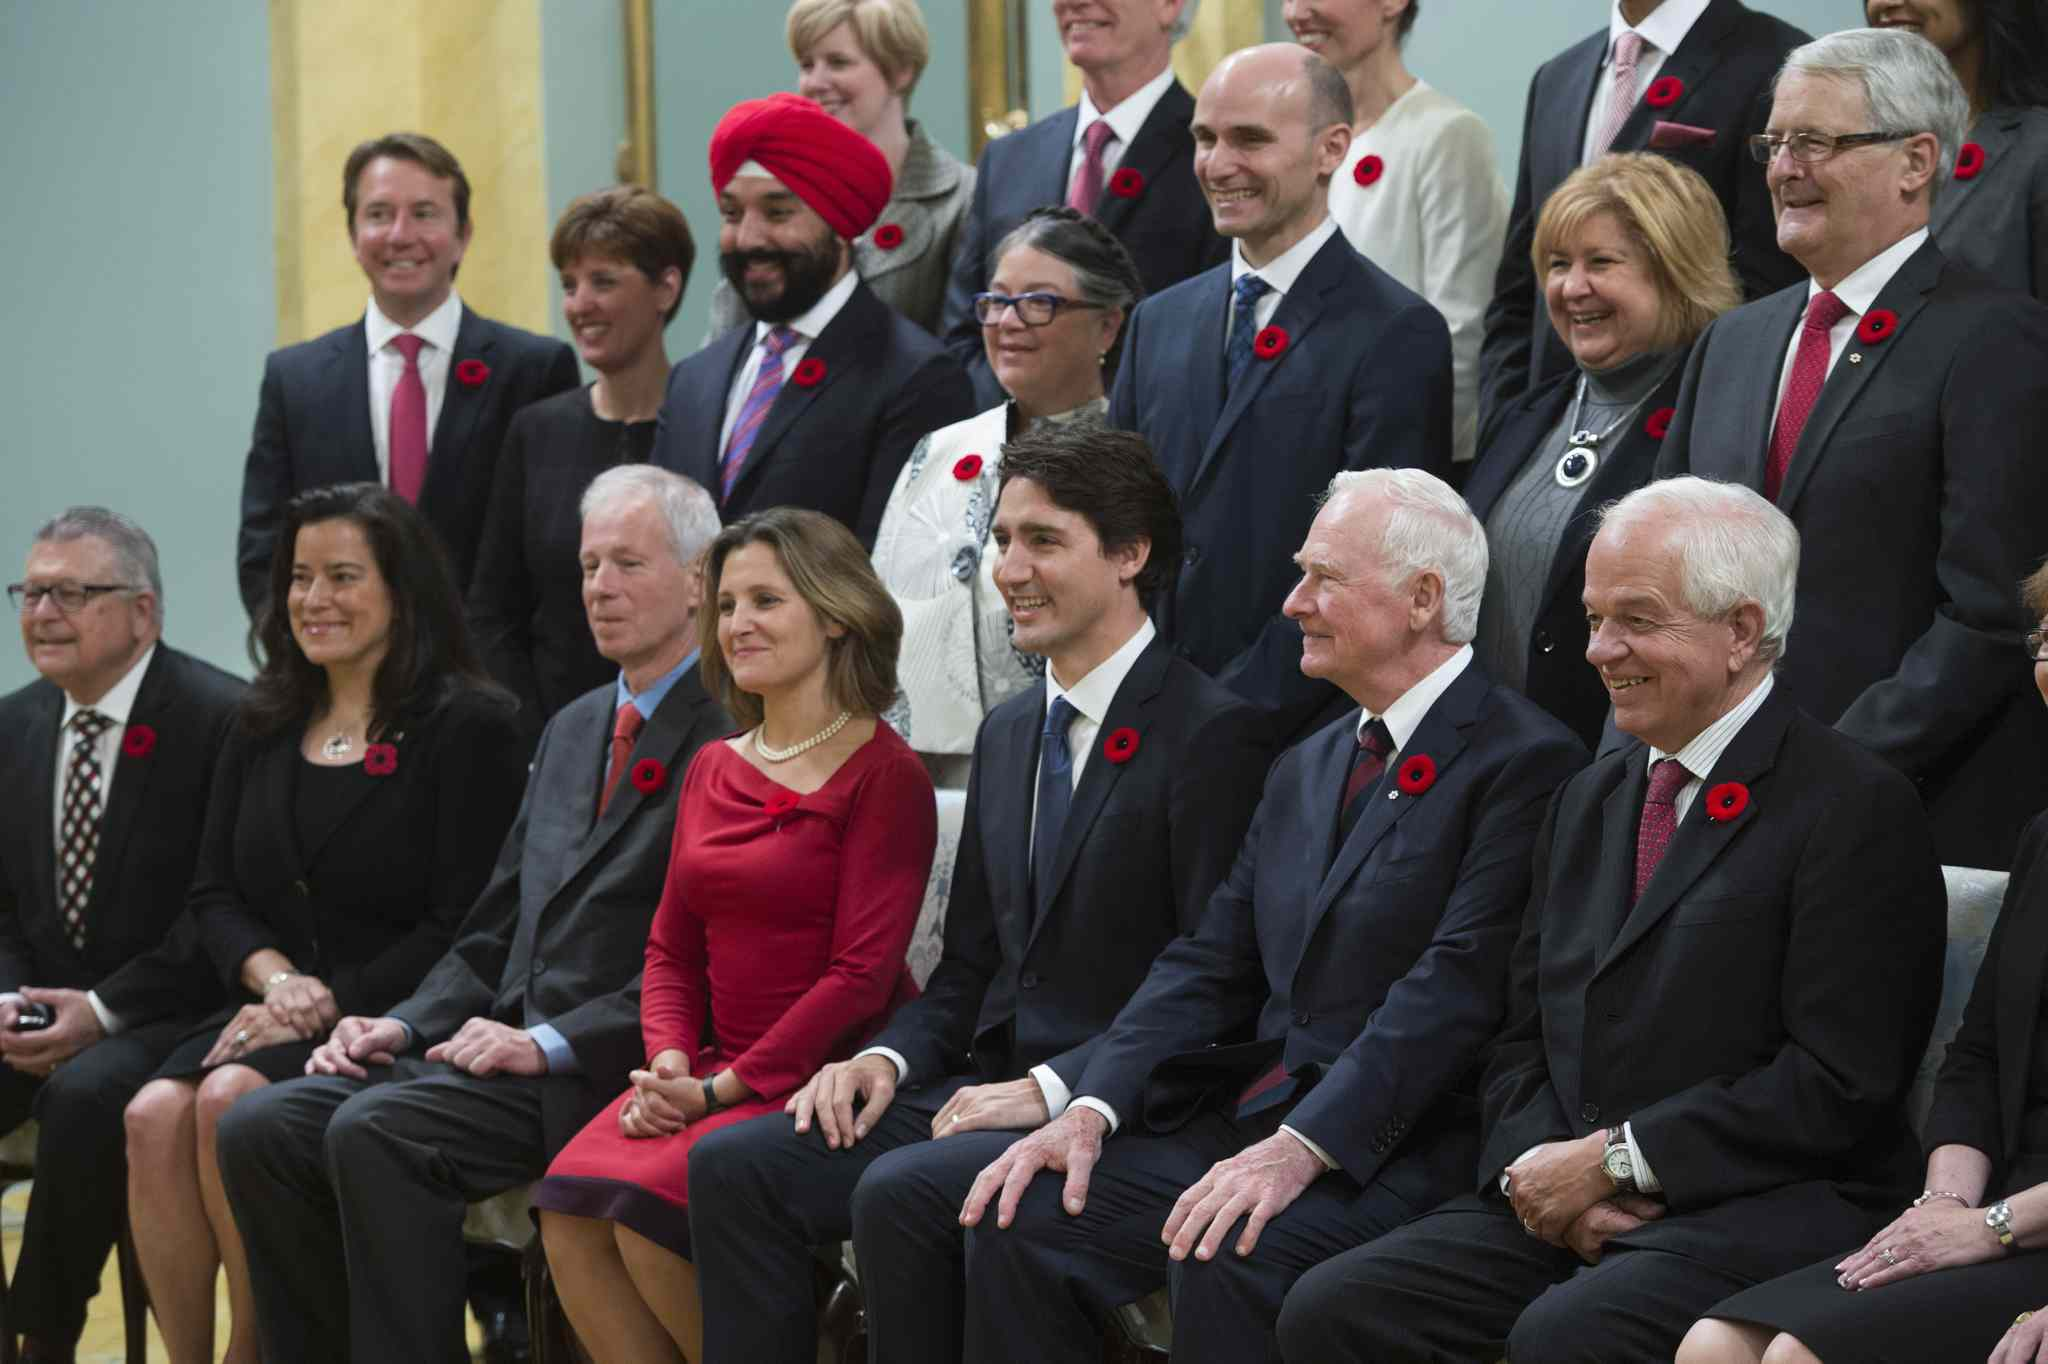 Governor General David Johnston joins Prime Minister Justin Trudeau and his new cabinet for a photo at Rideau Hall, in Ottawa.